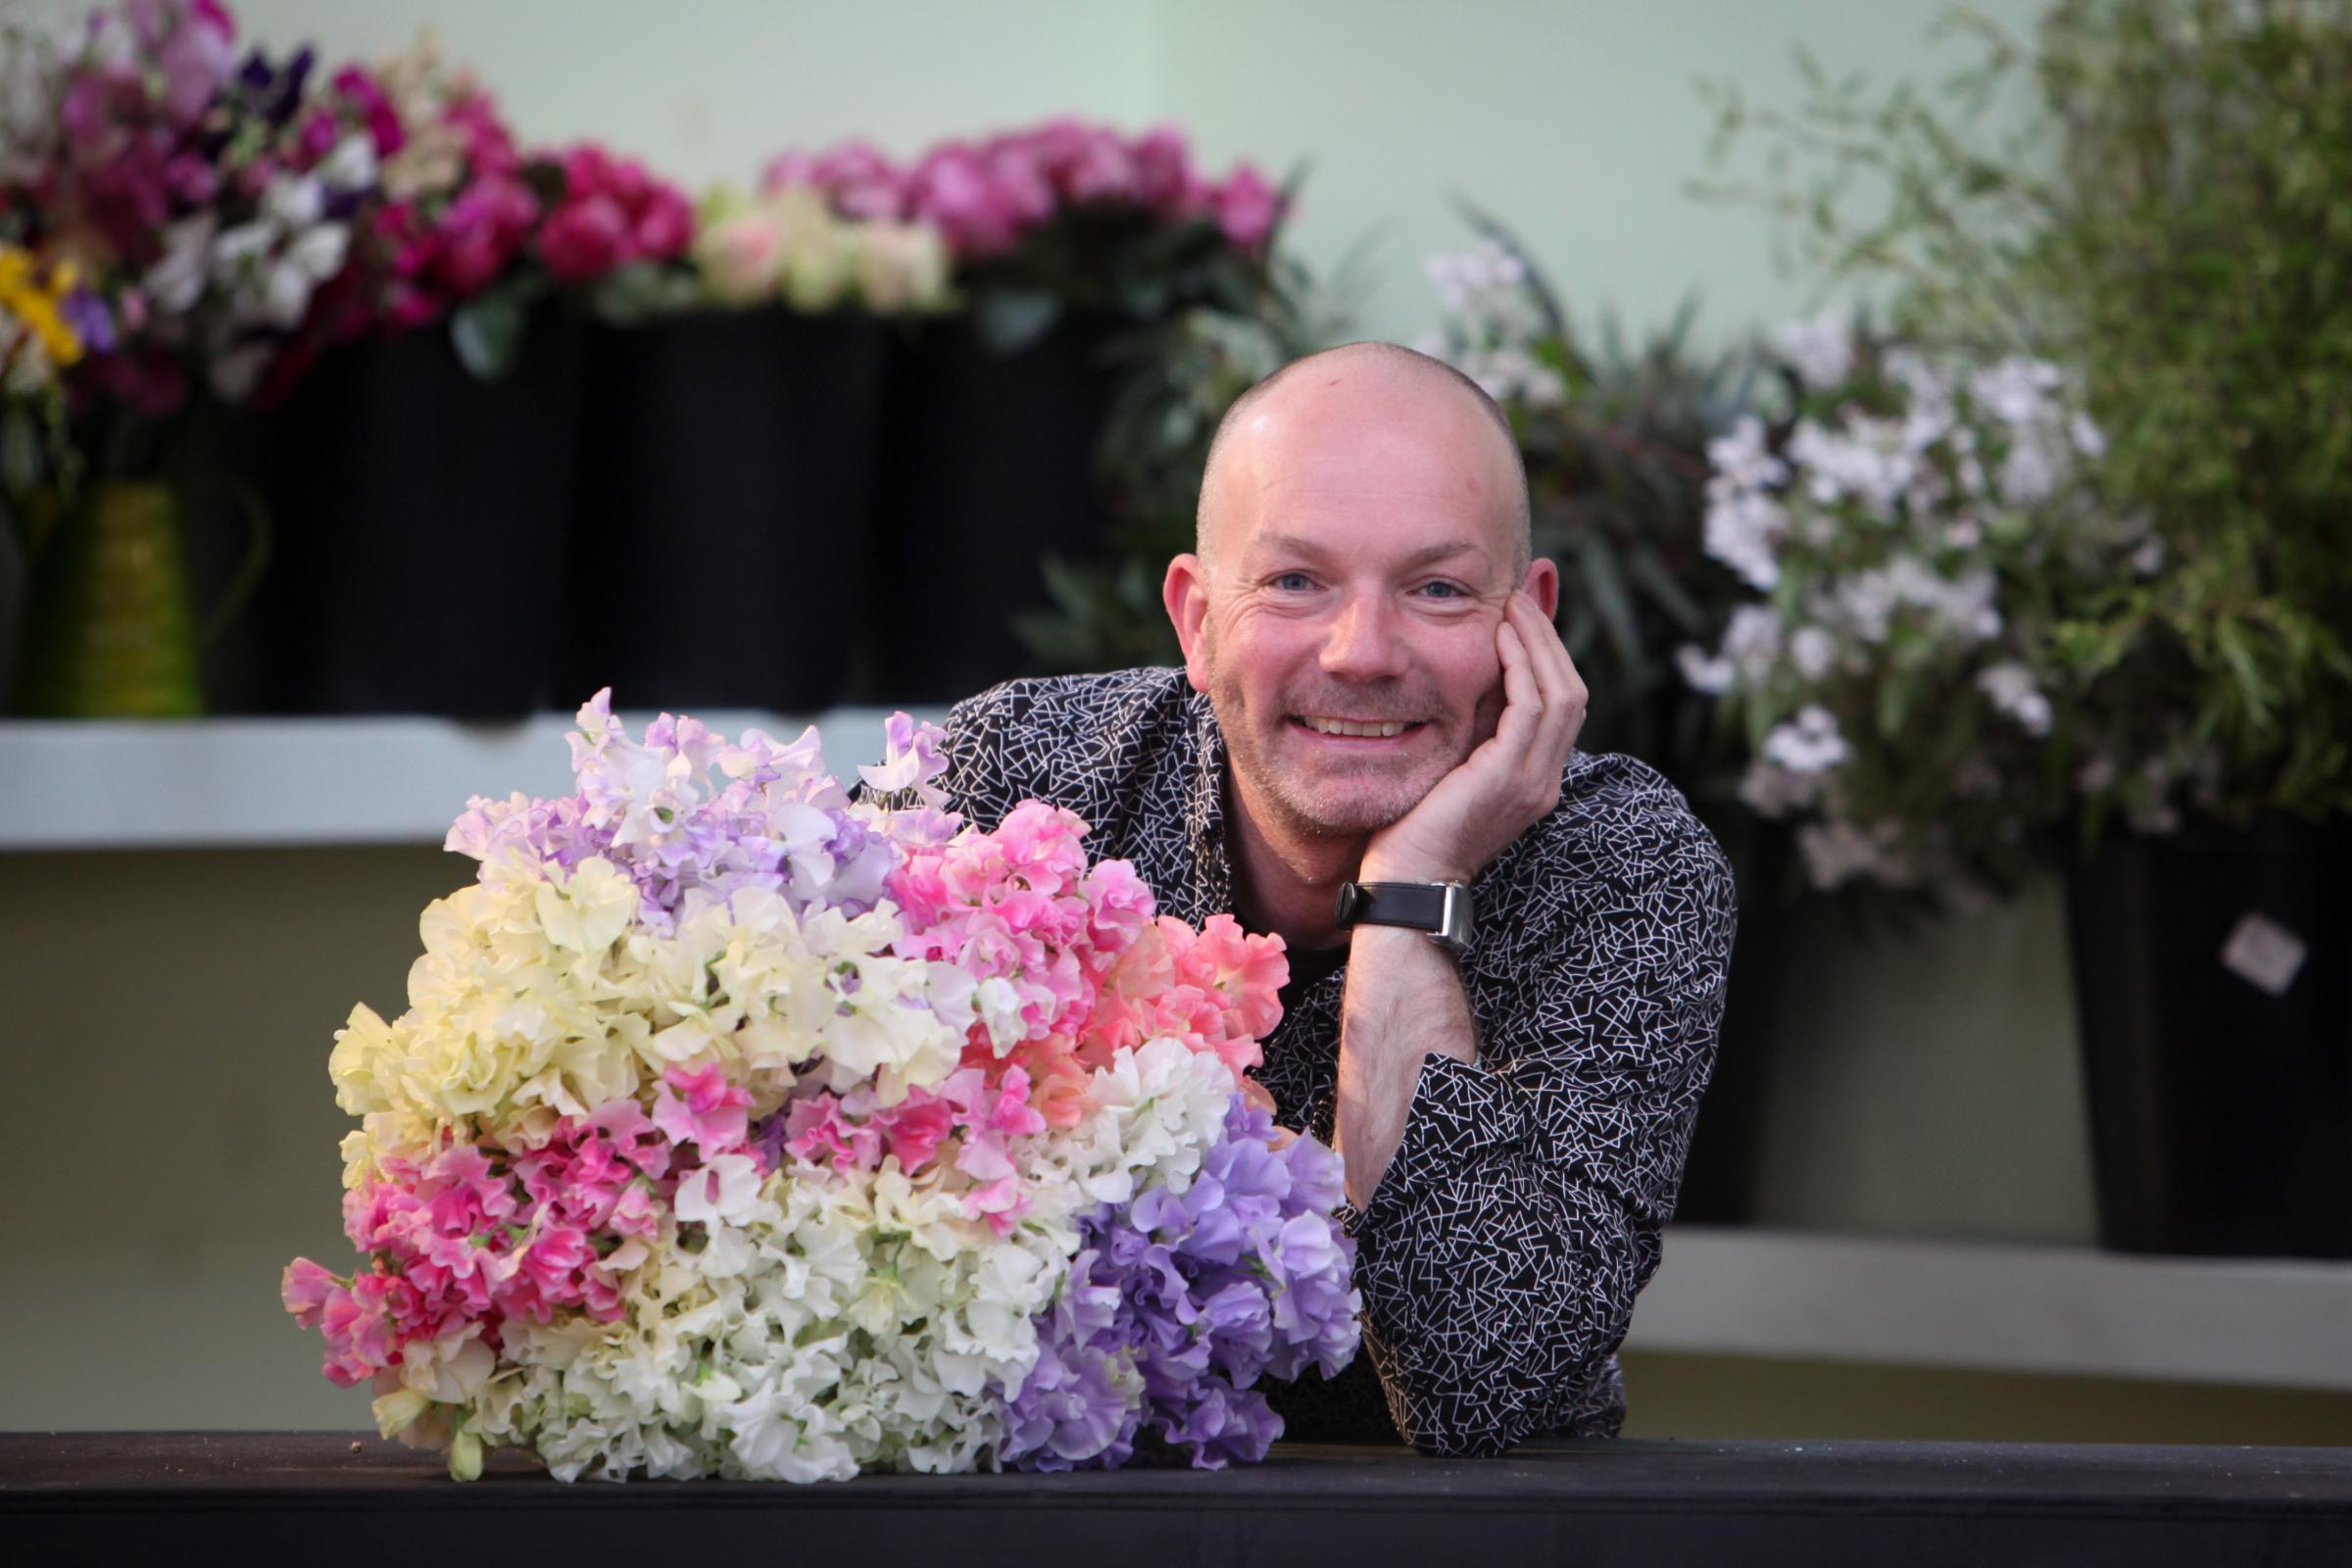 Flower show presenter and BBC judge Jonathan Moseley. Picture: Stuart Purfield - Photographer